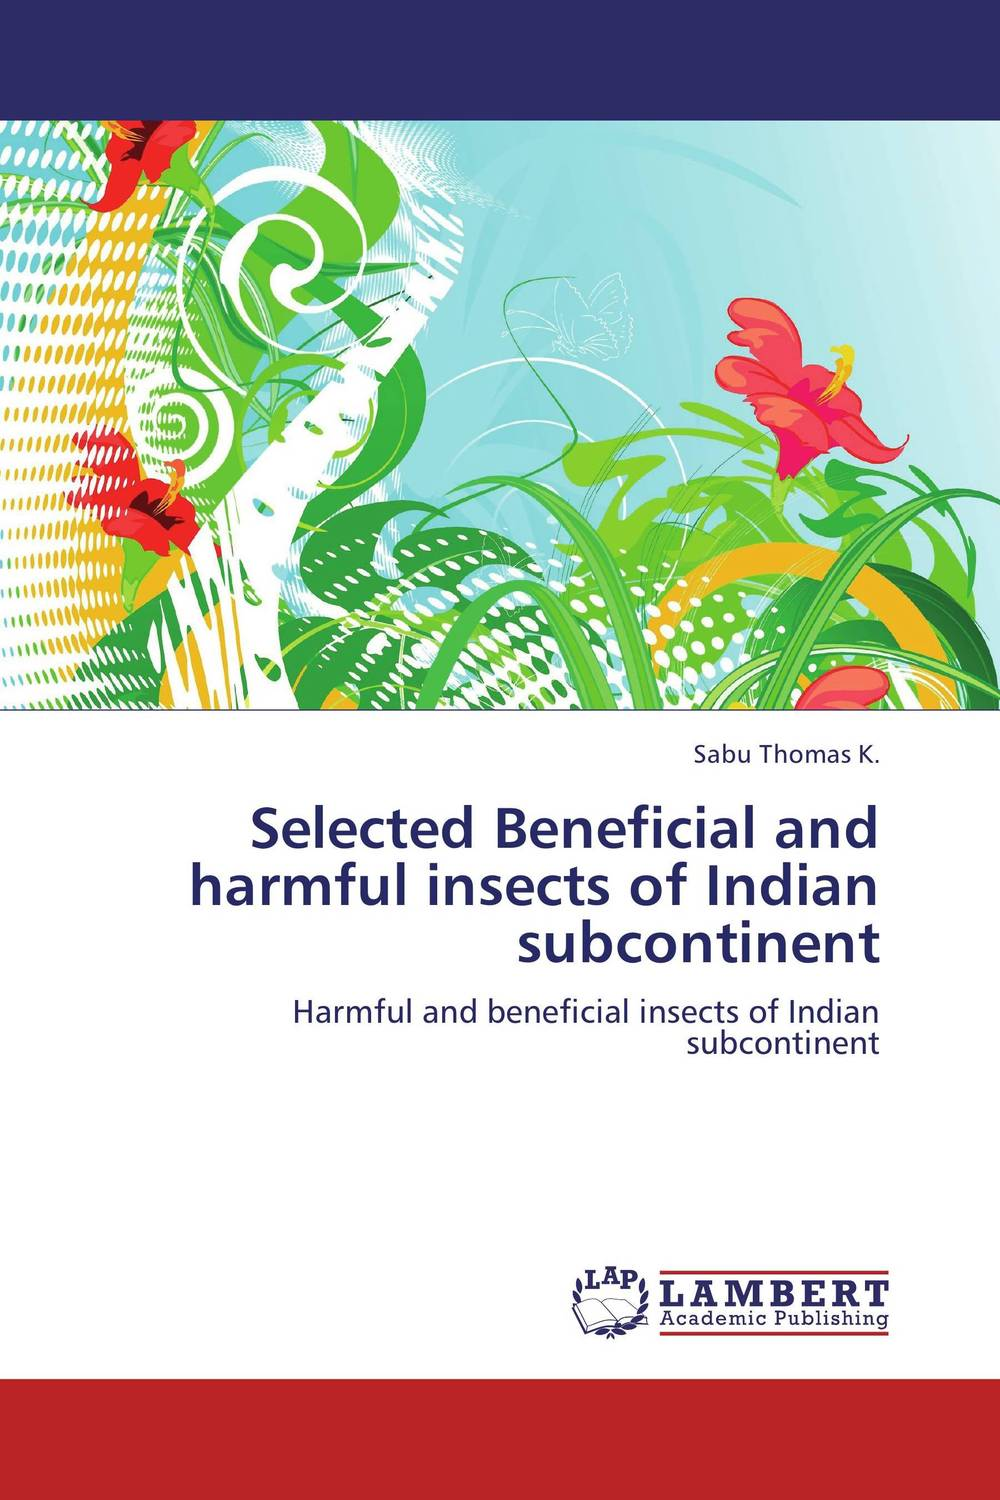 Selected Beneficial and harmful insects of Indian subcontinent devices for detection and management of stored grain insects